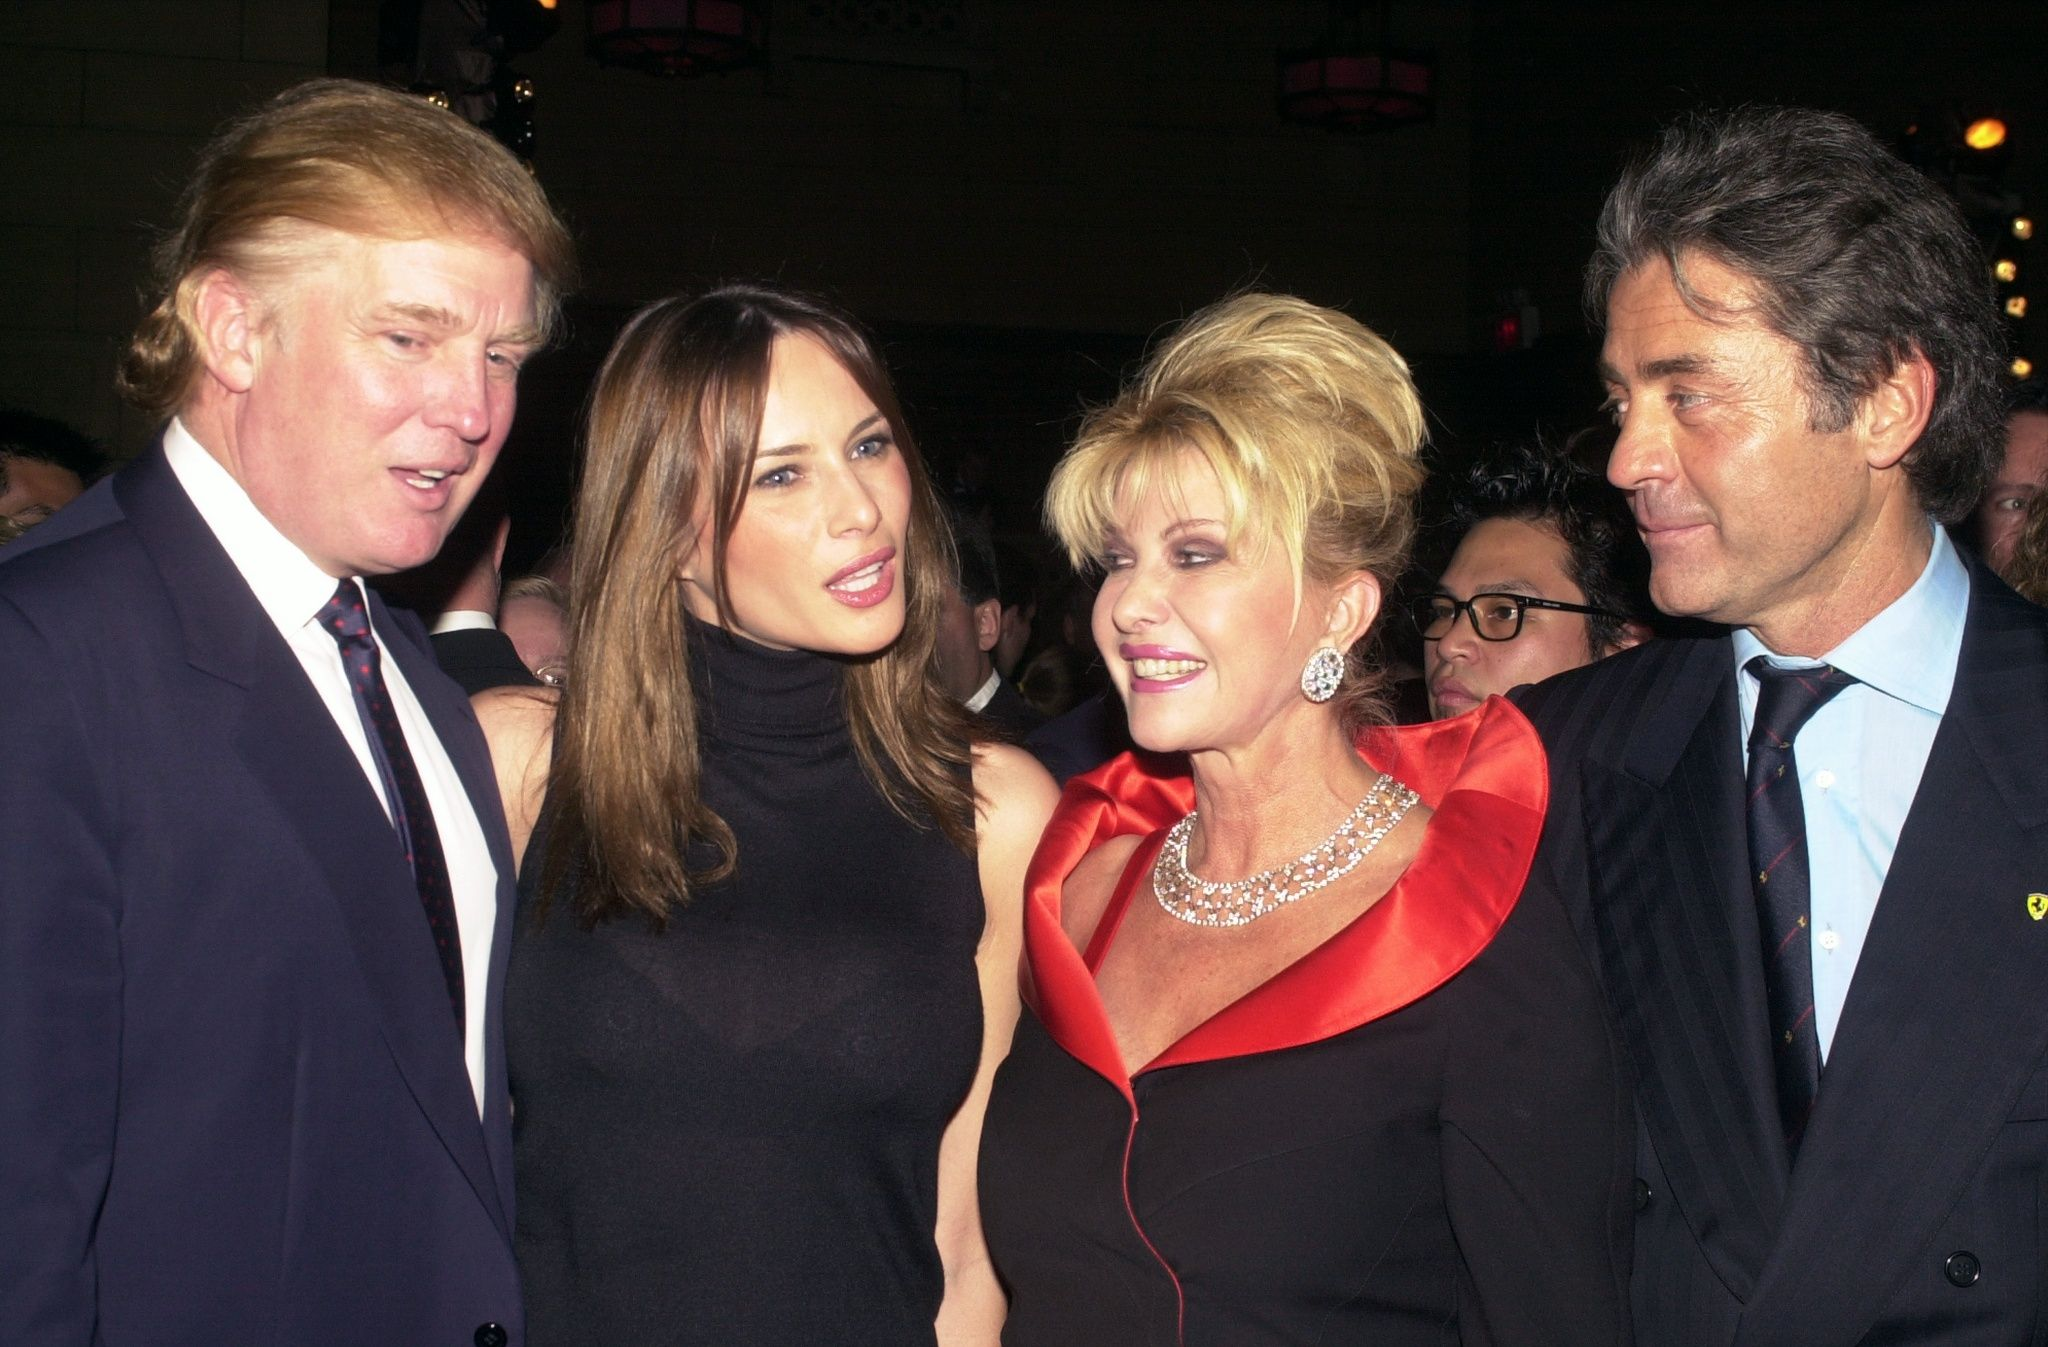 Donald Trump and Melania Knauss, back when they were dating, pose with Ivana Trump and Roffredo Gaetani at a party in 2000.